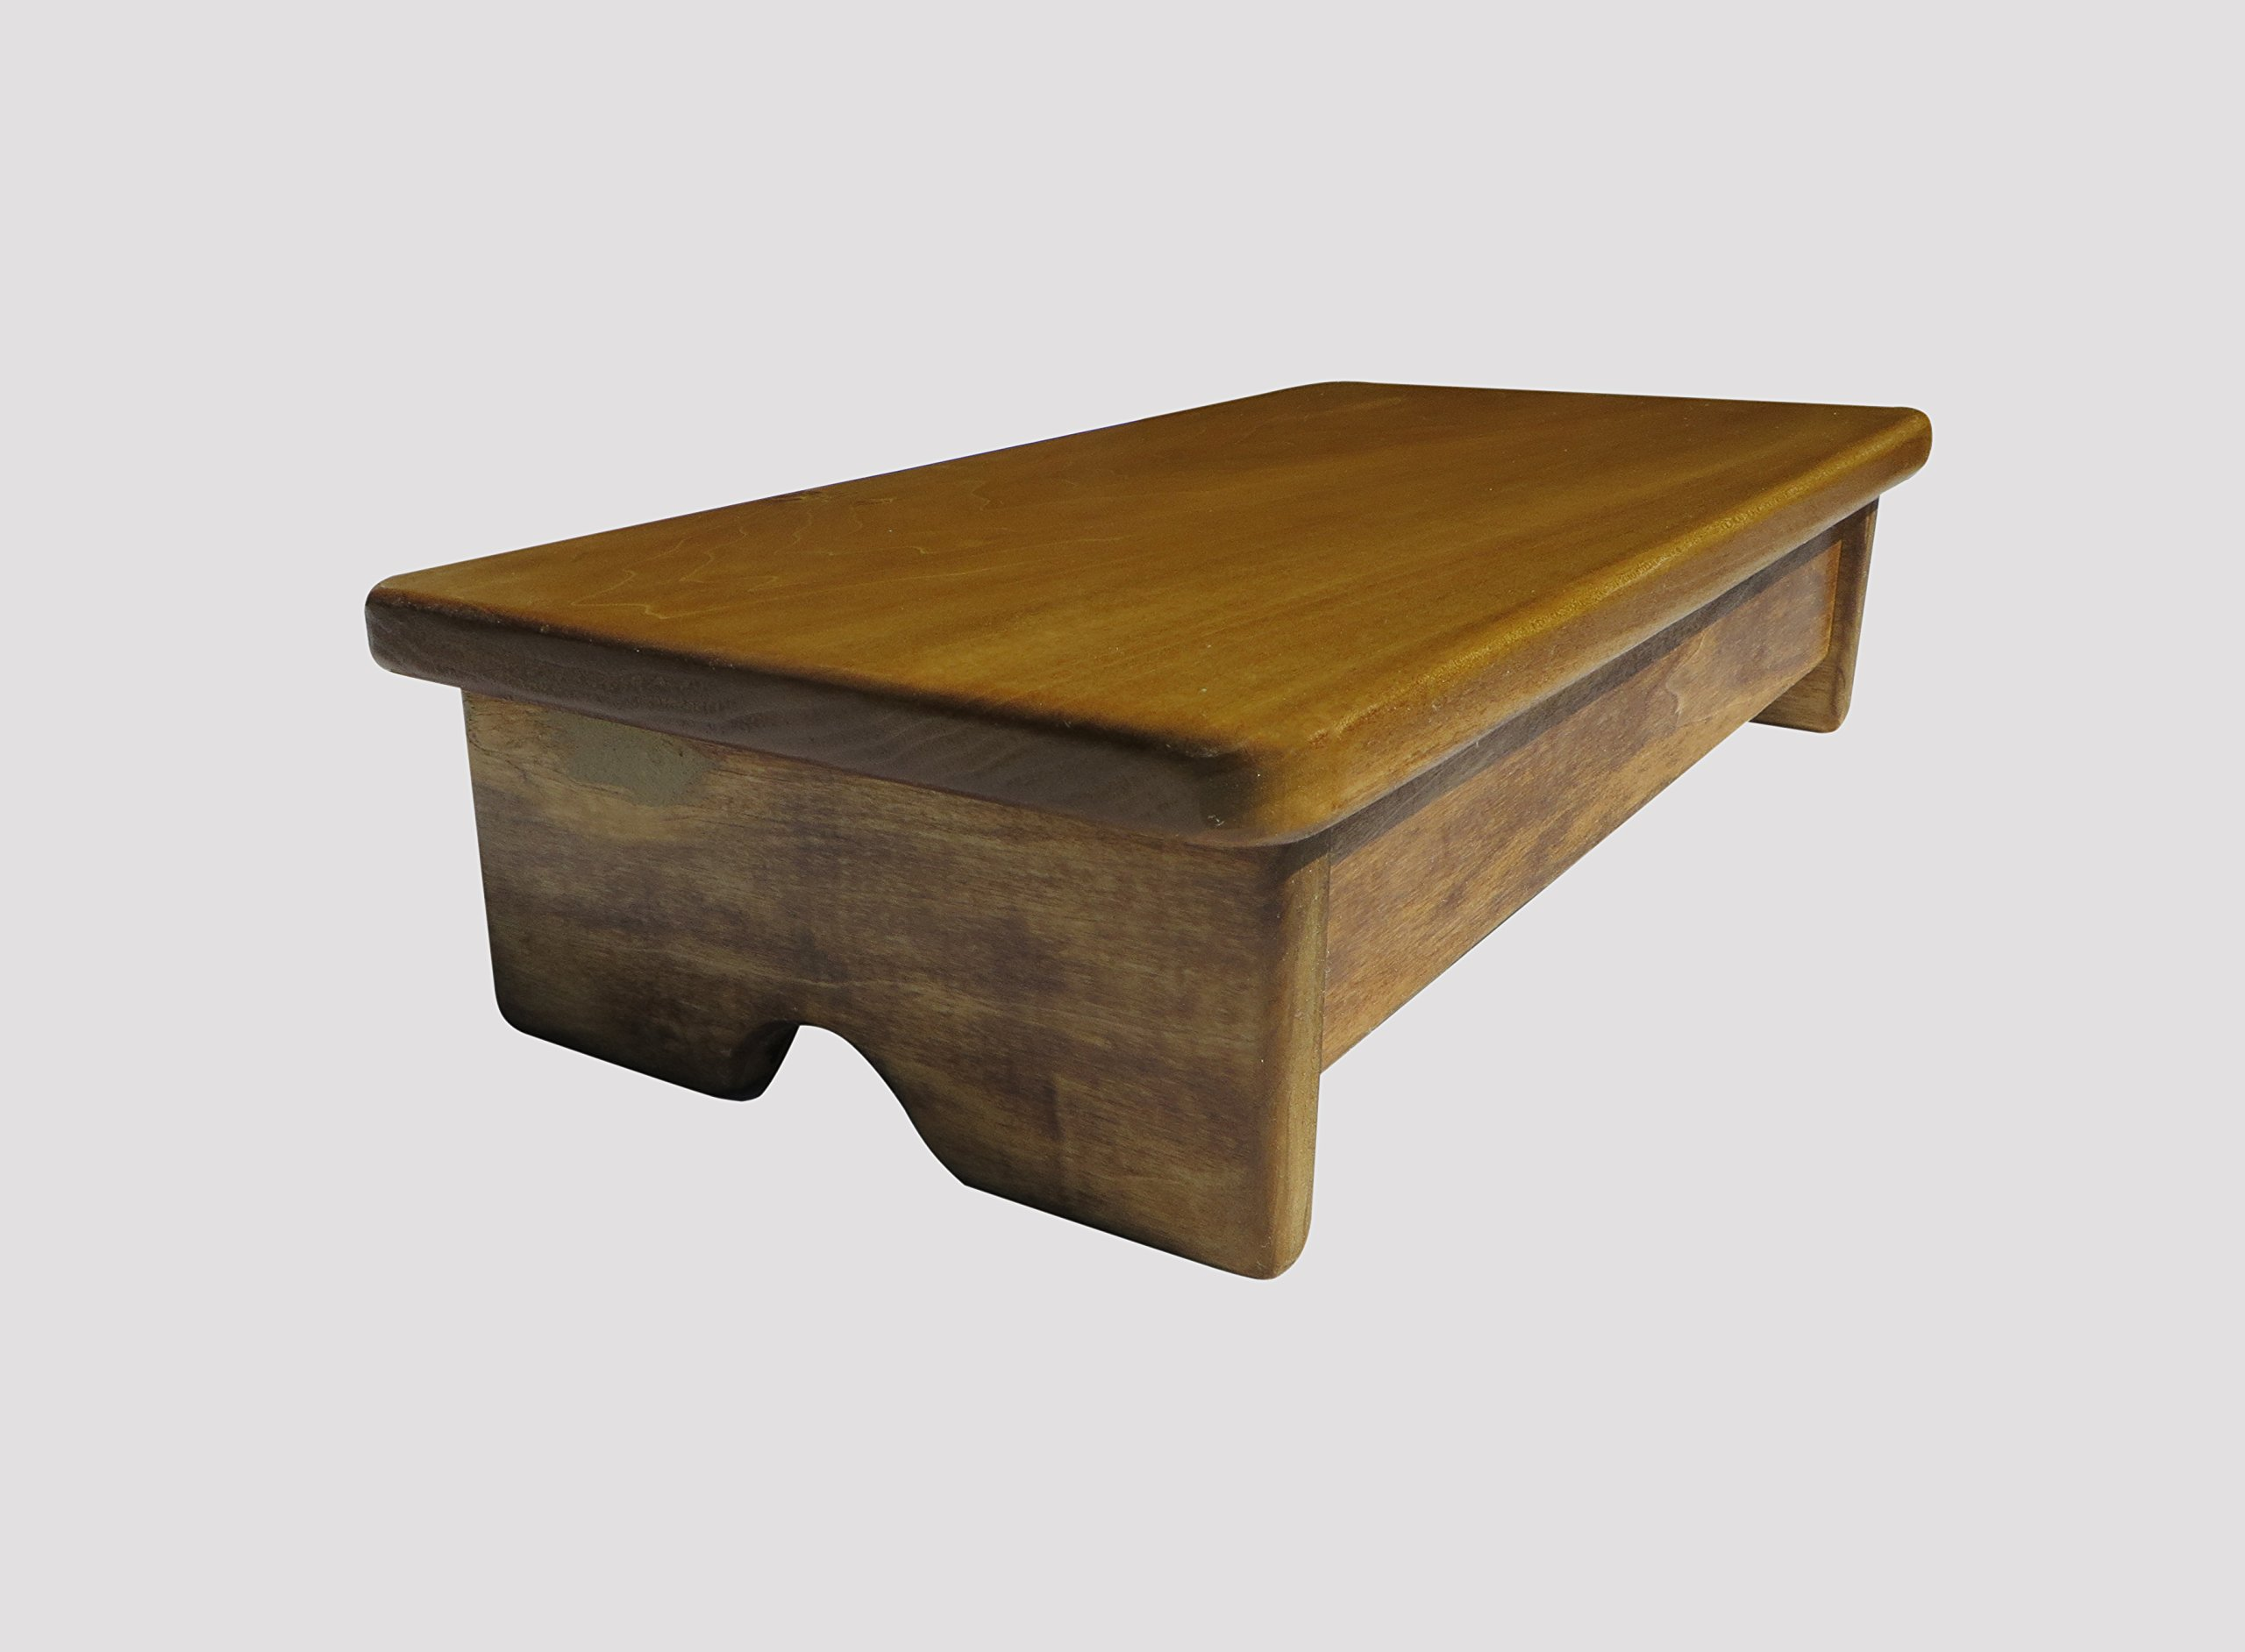 Garage Foot Stool 4'' Tall Poplar Wood (Made in the USA) (Maple Stain)